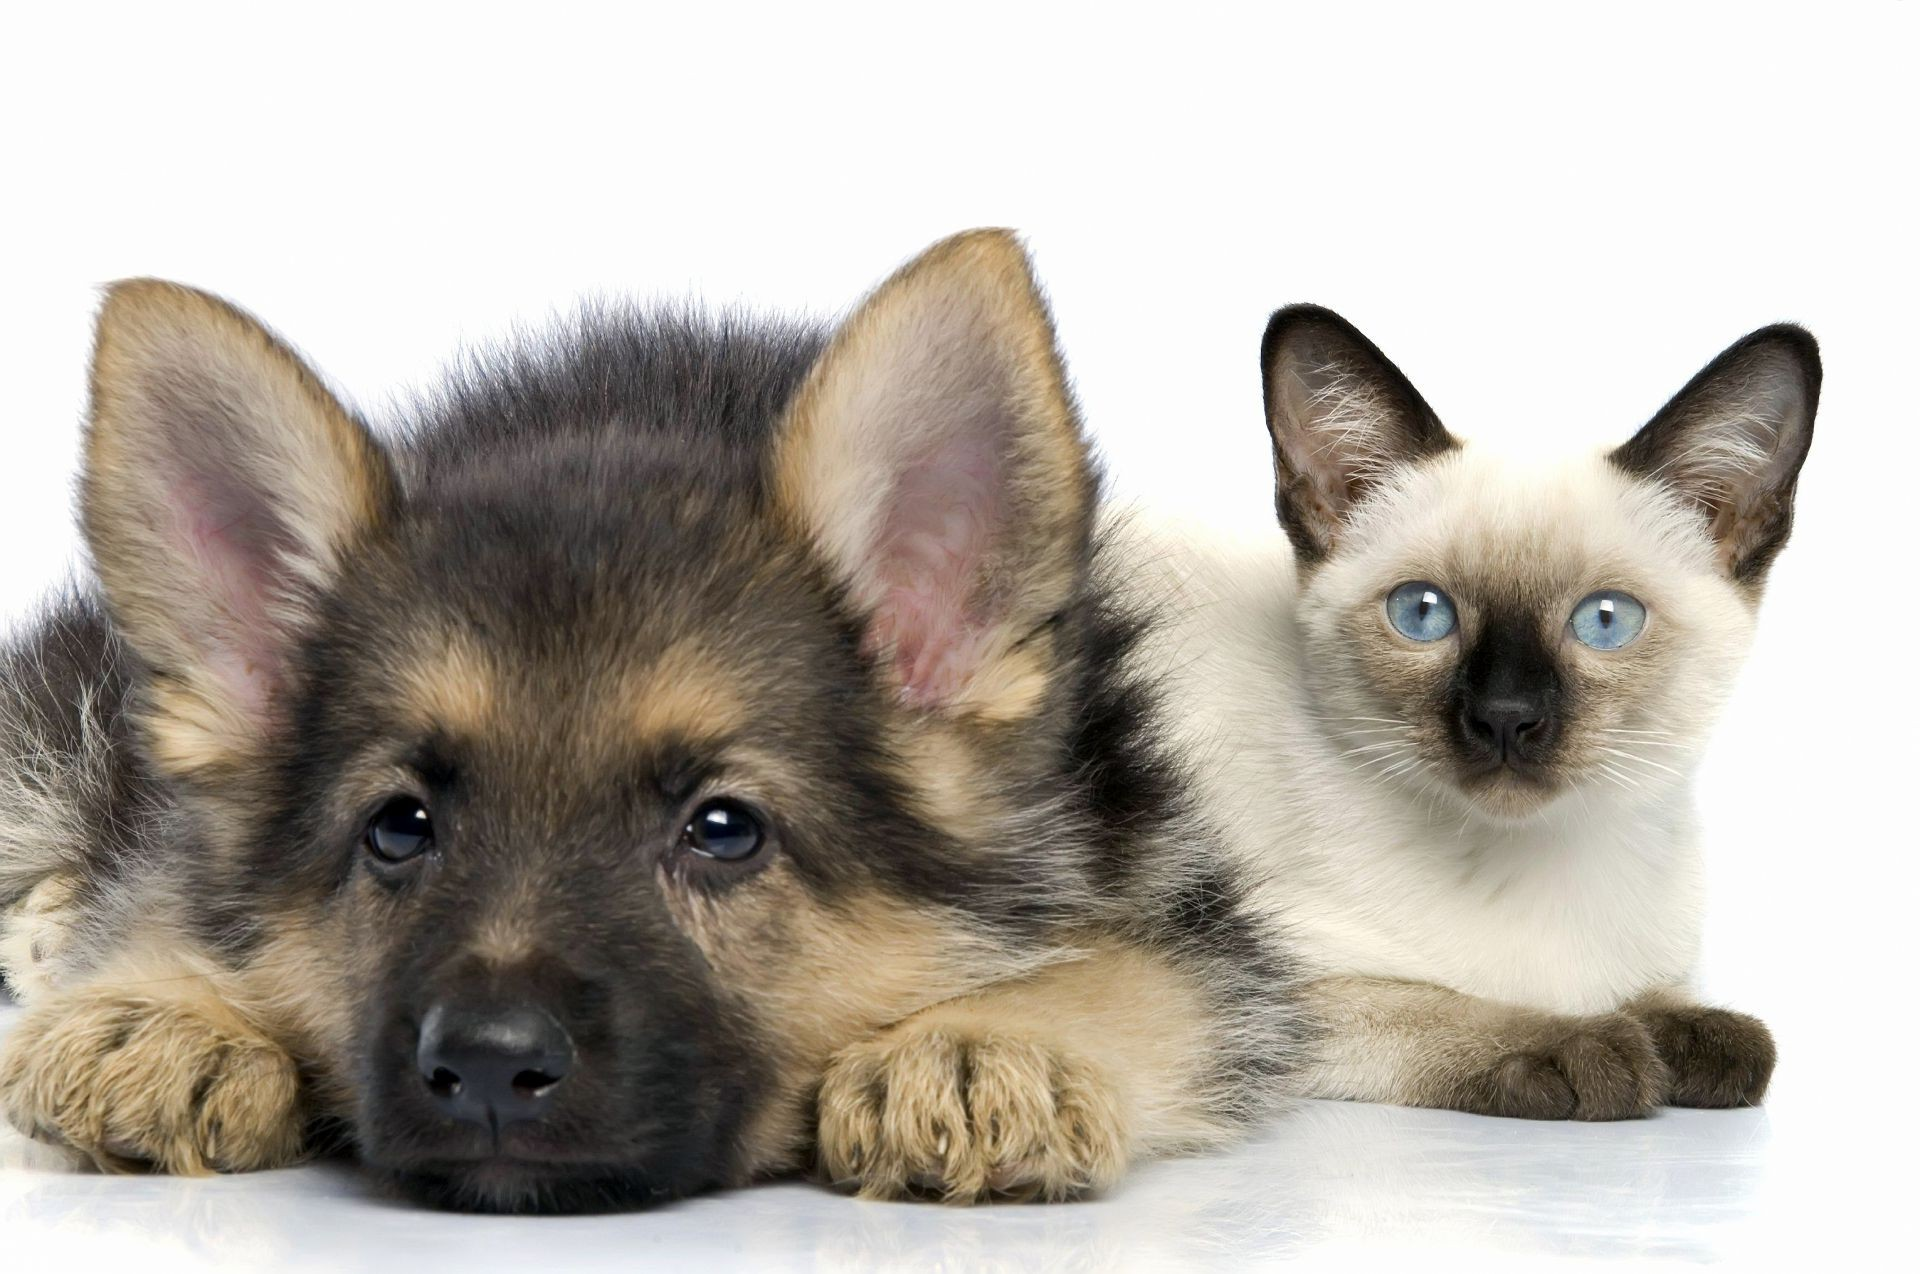 animals cute dog canine pet mammal animal purebred studio puppy little domestic portrait eye sit pedigree looking breed fur young adorable